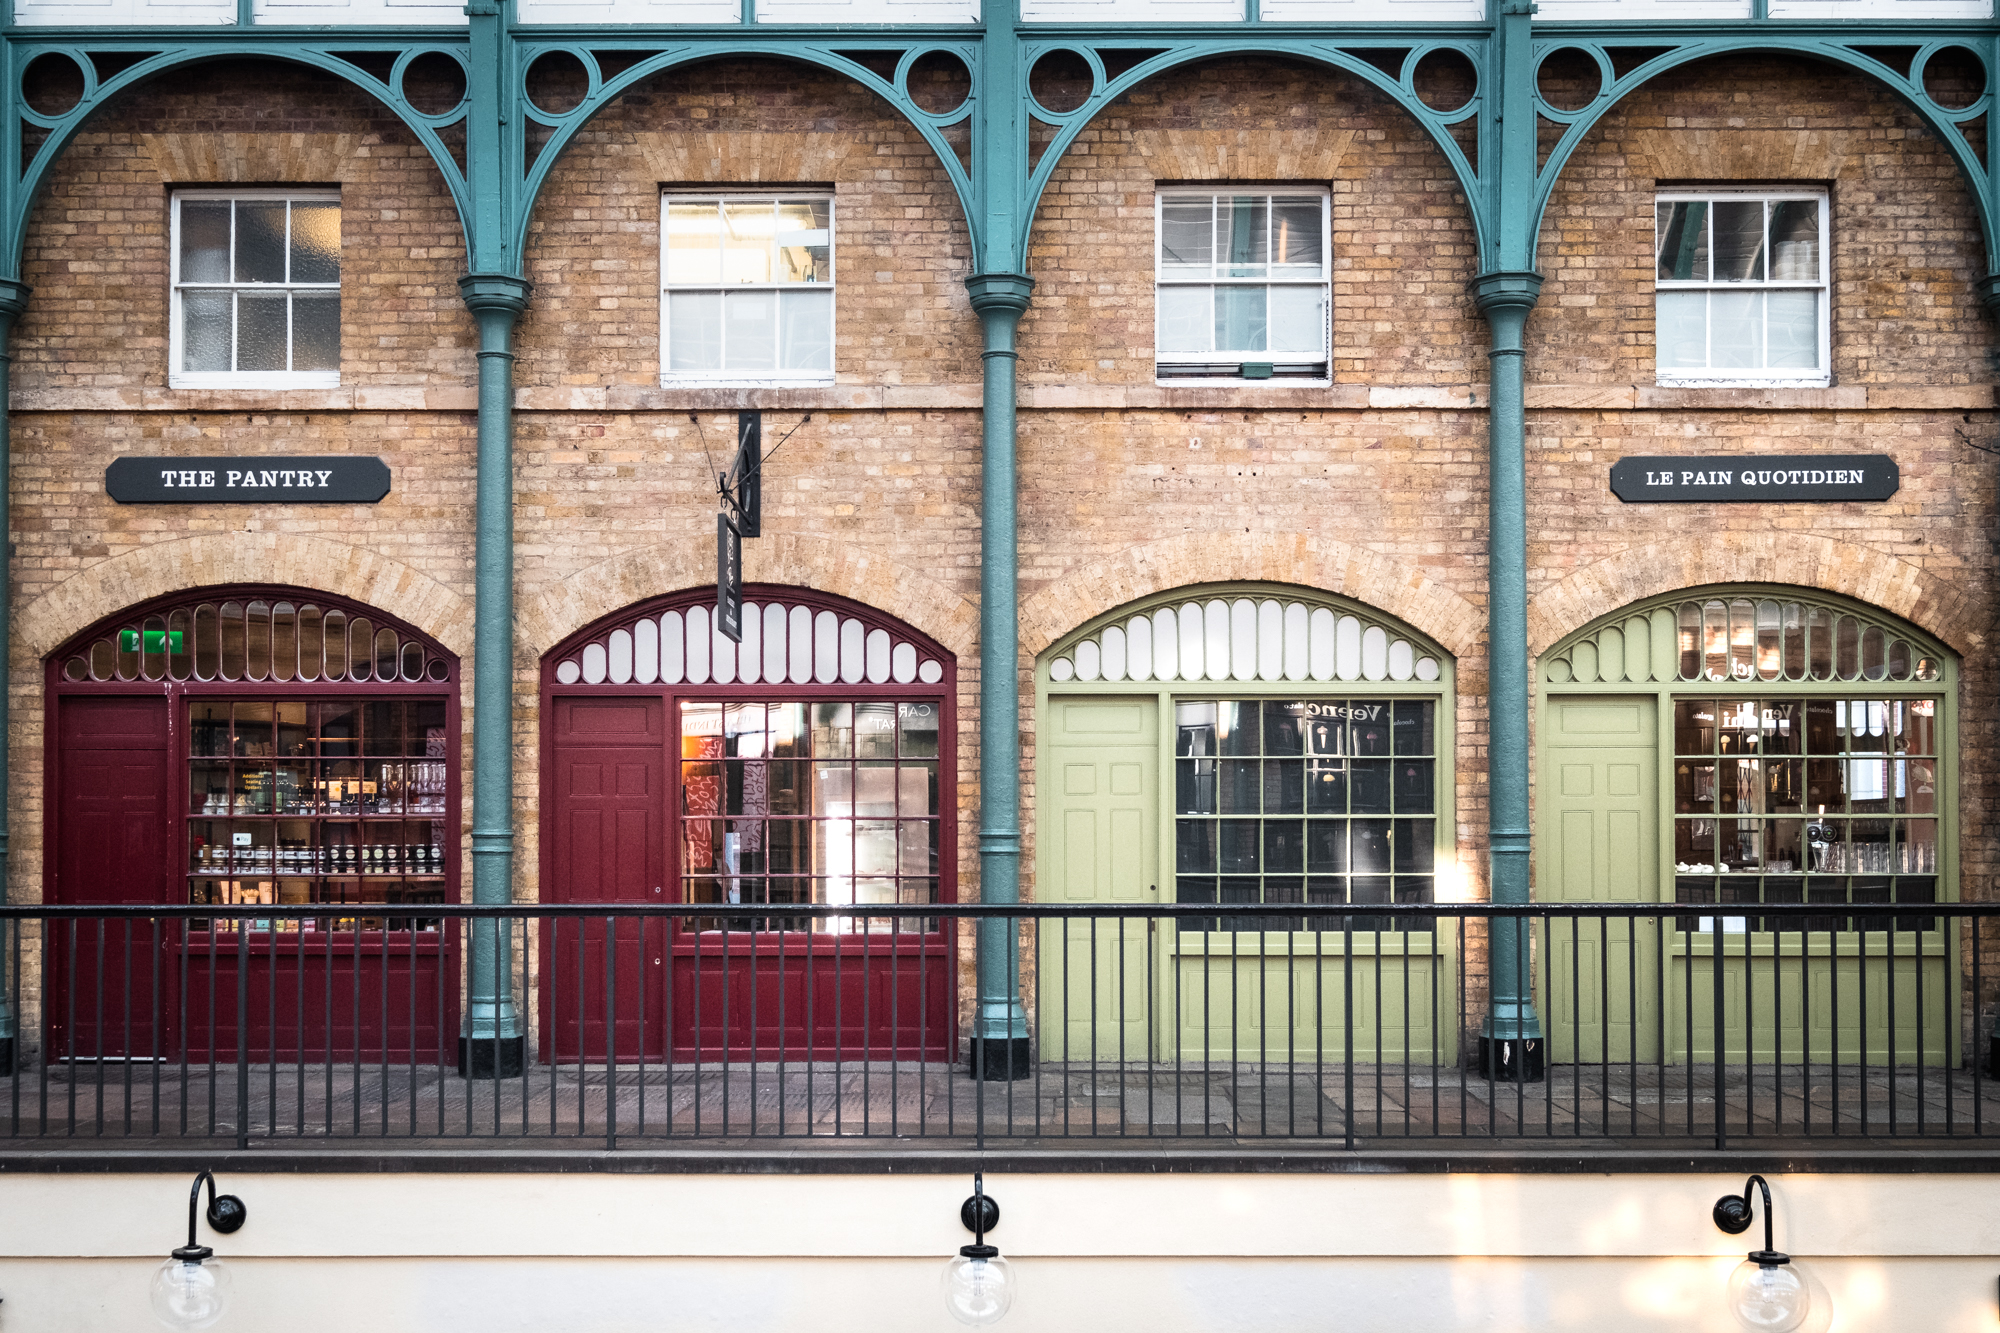 A photo of The Market Building store fronts, Covent Garden, London taken by Trevor Sherwin